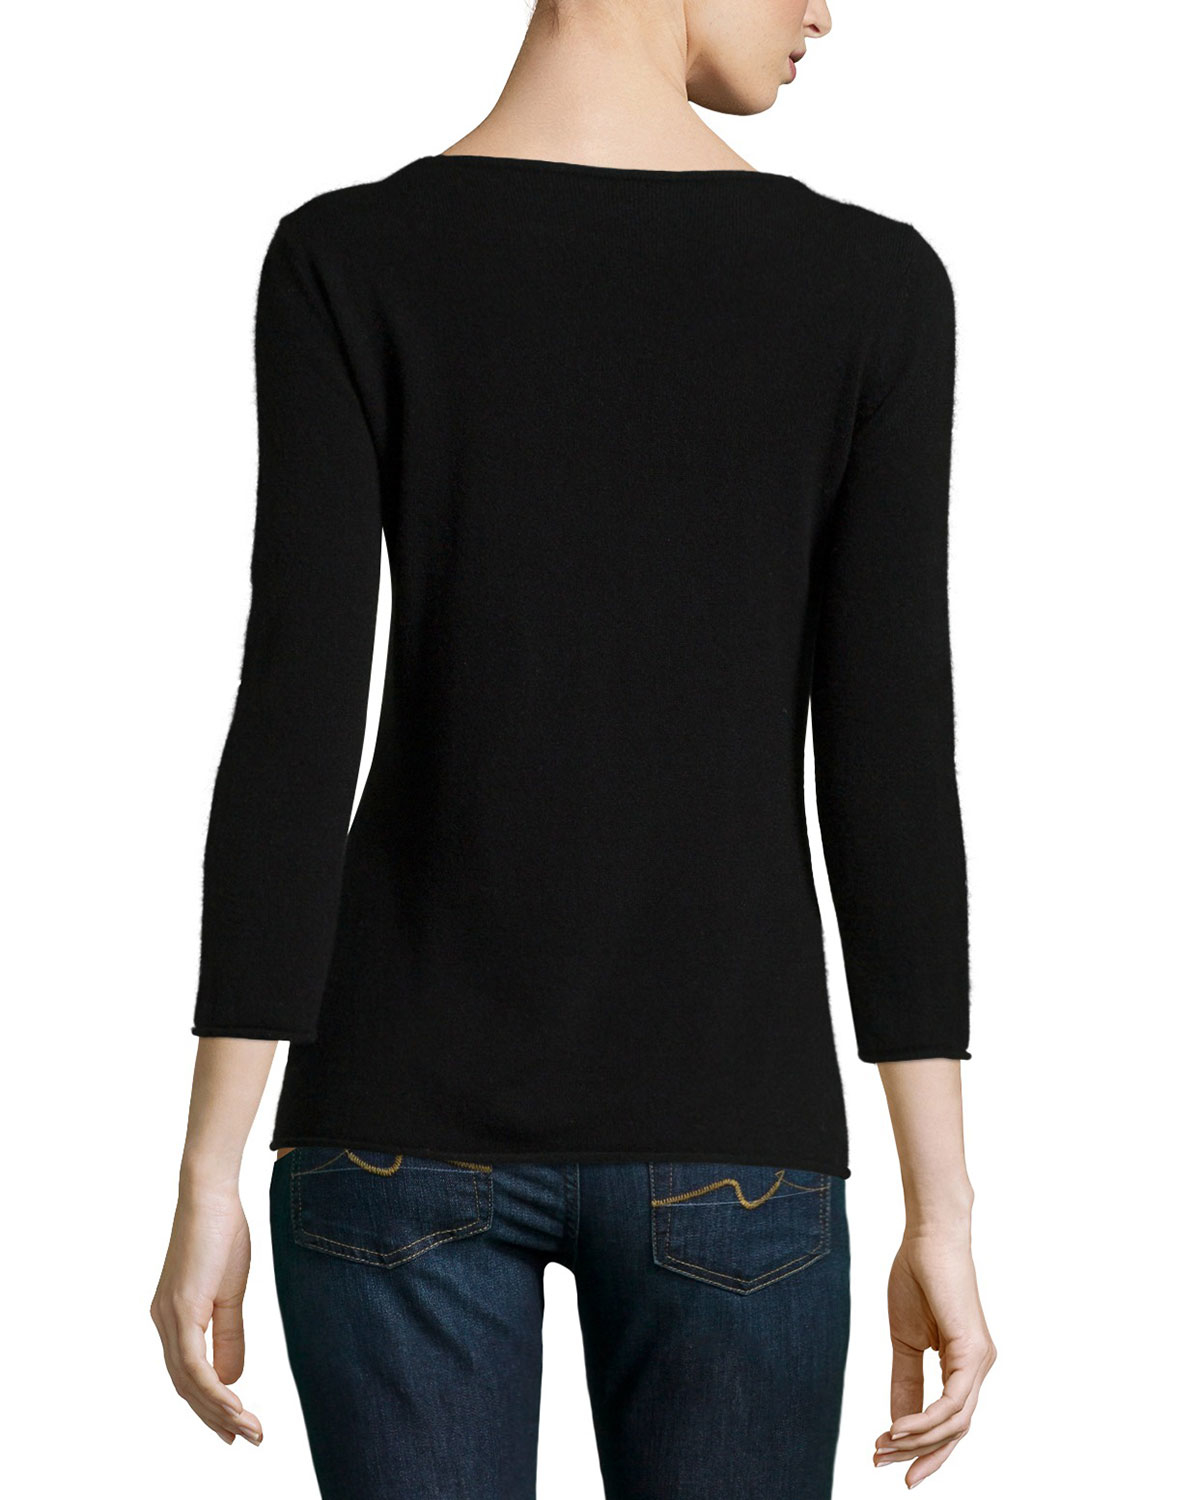 Women's Cold Shoulder Sweater Boat Neck Long Sleeve Loose Fitting Sexy Sweatshirt Pullover. from $ 21 98 Prime. out of 5 stars Sherrylily. Womens Off Shoulder Long Sleeve Loose Sweater Pullovers Solid Color Boat Neck Sweatshirts. from $ 14 99 Prime. 3 out of 5 stars 3. Beautife.